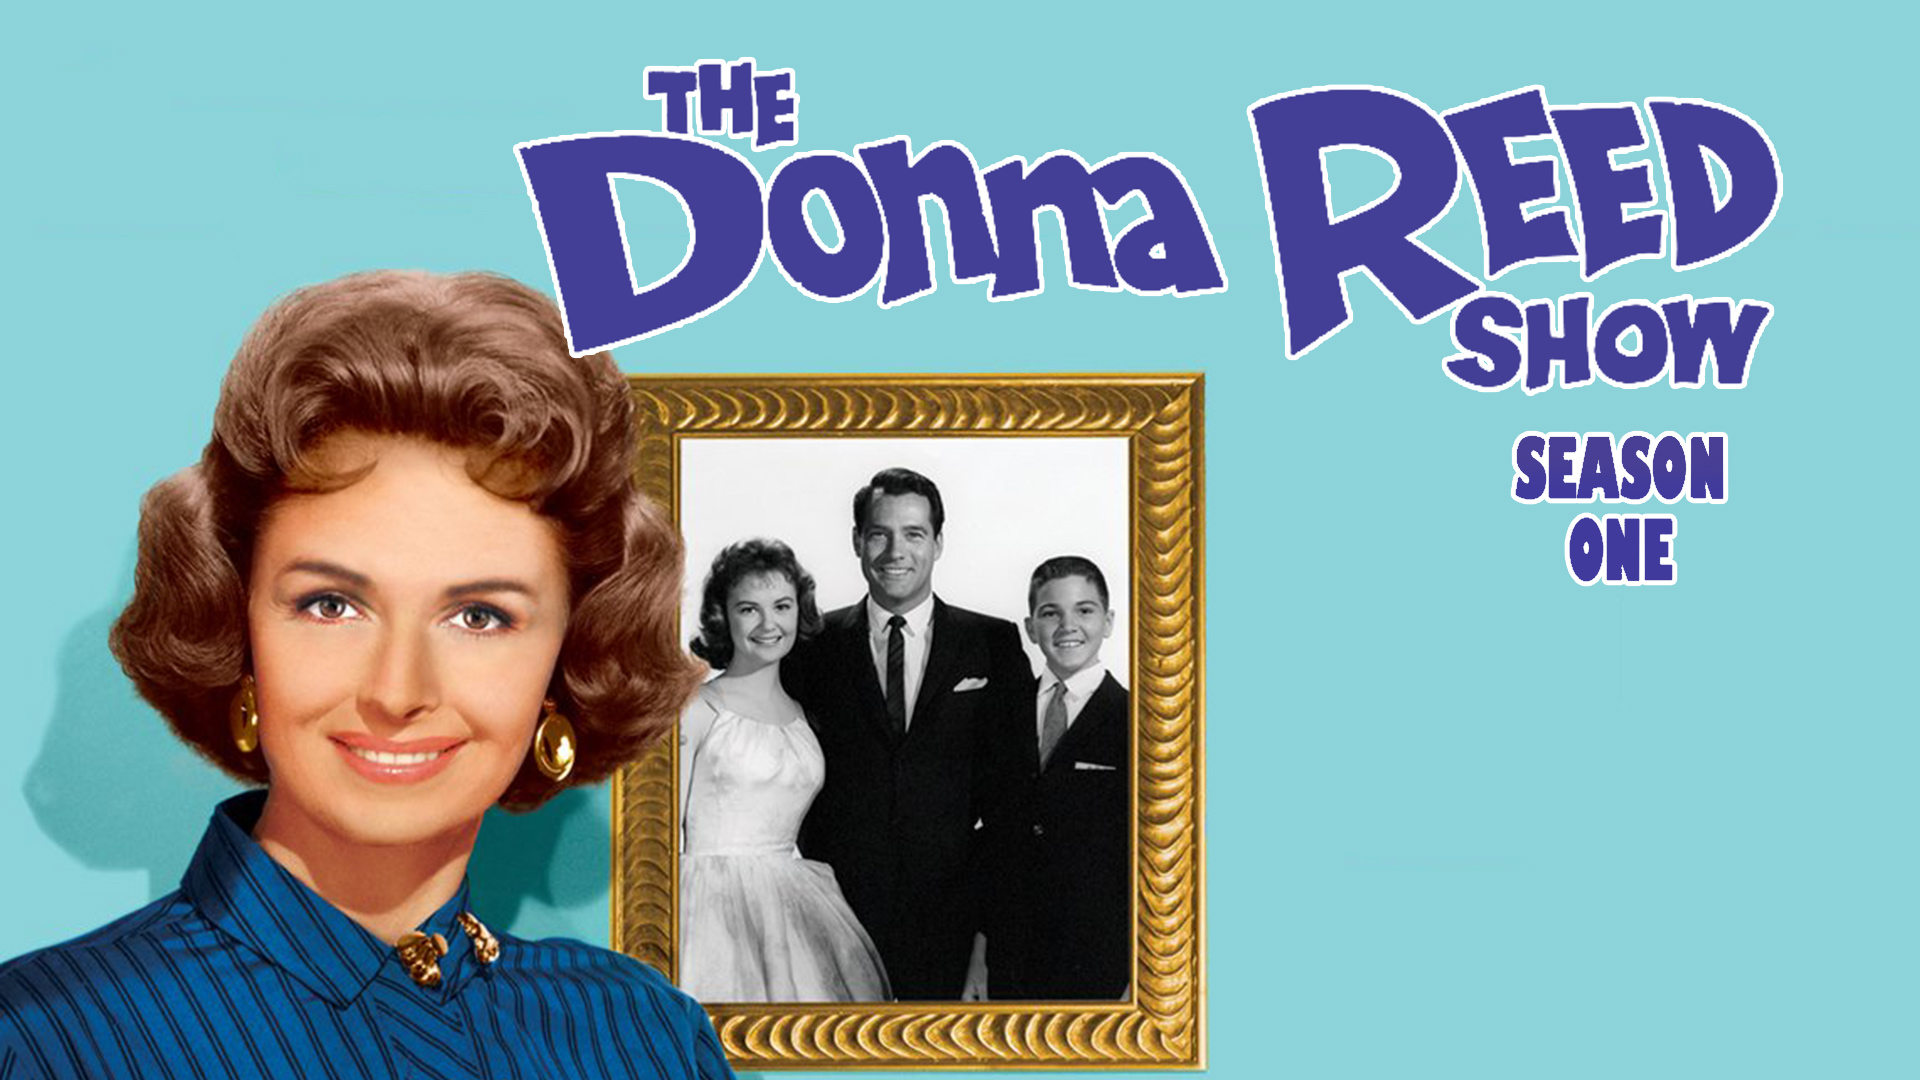 The Donna Reed Show Season 1